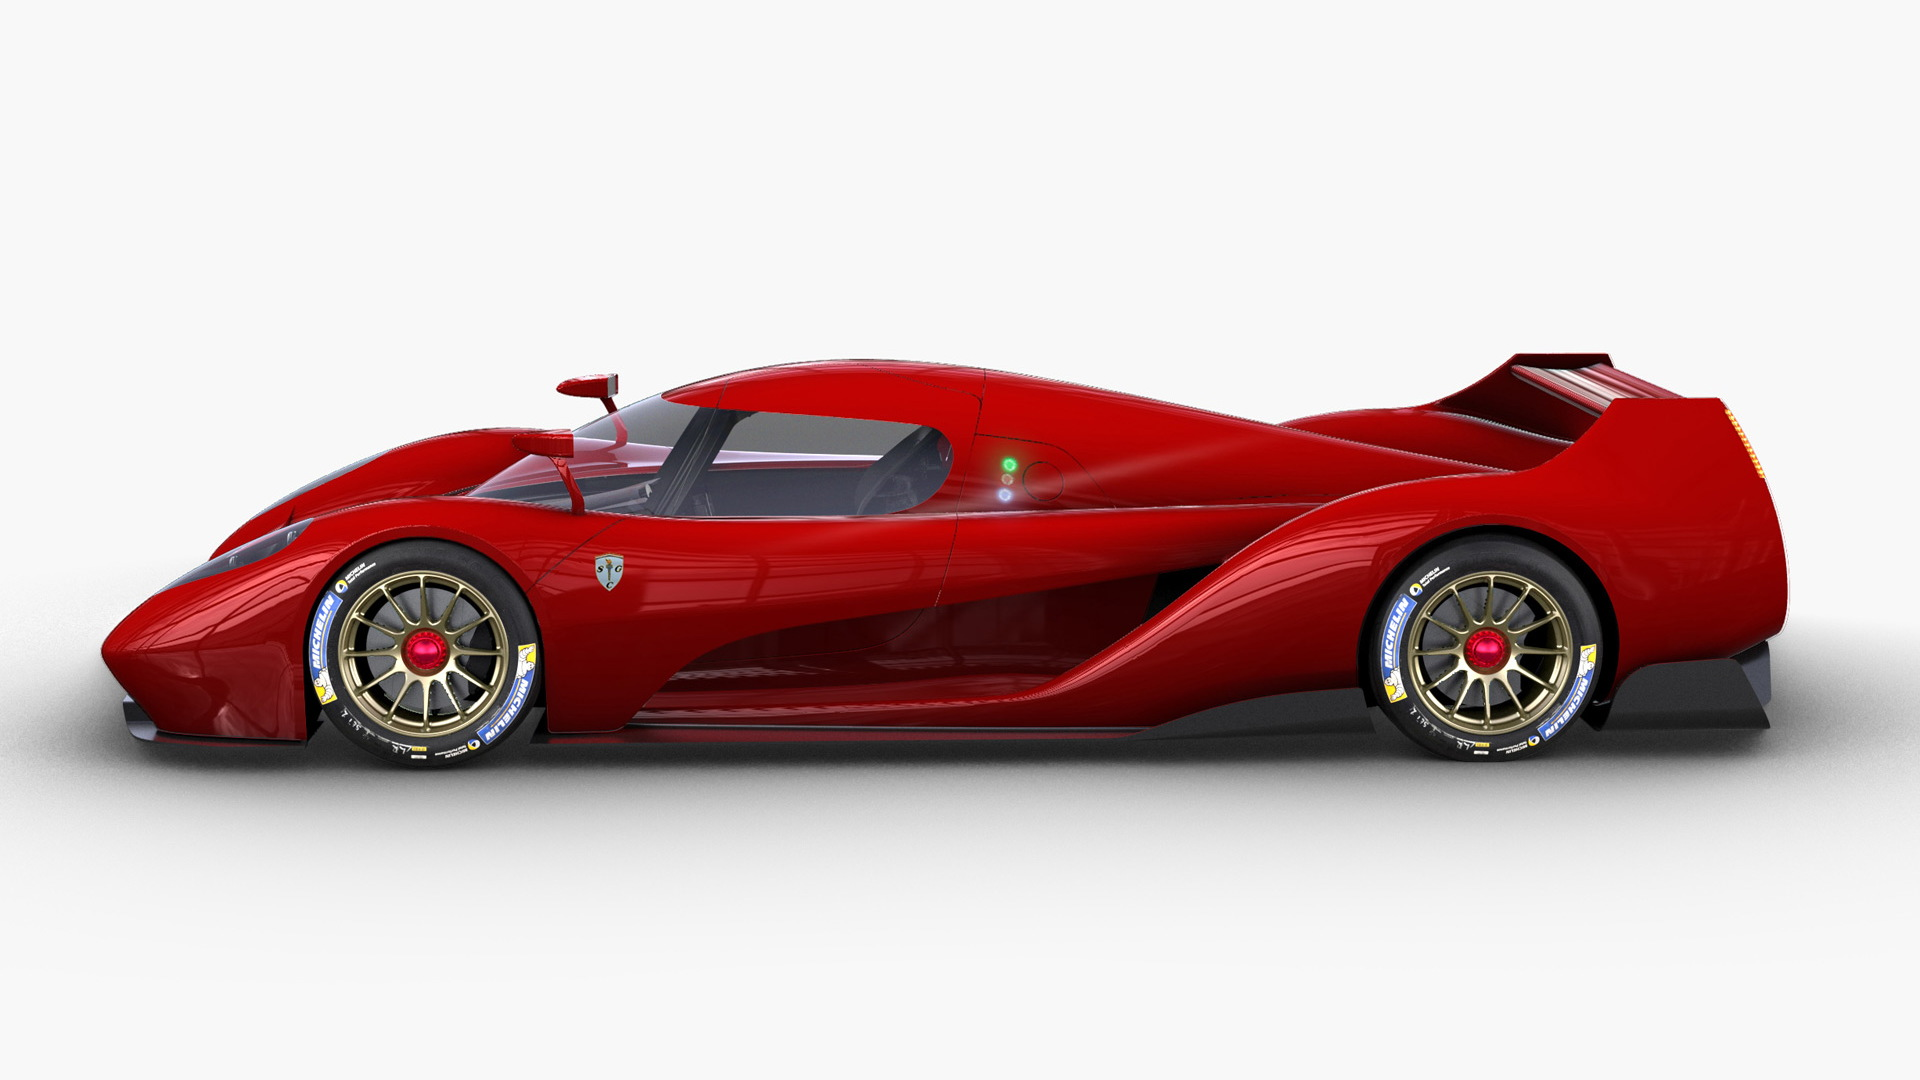 Glickenhaus 007 Le Mans Hypercar Revealed And She S A Beauty